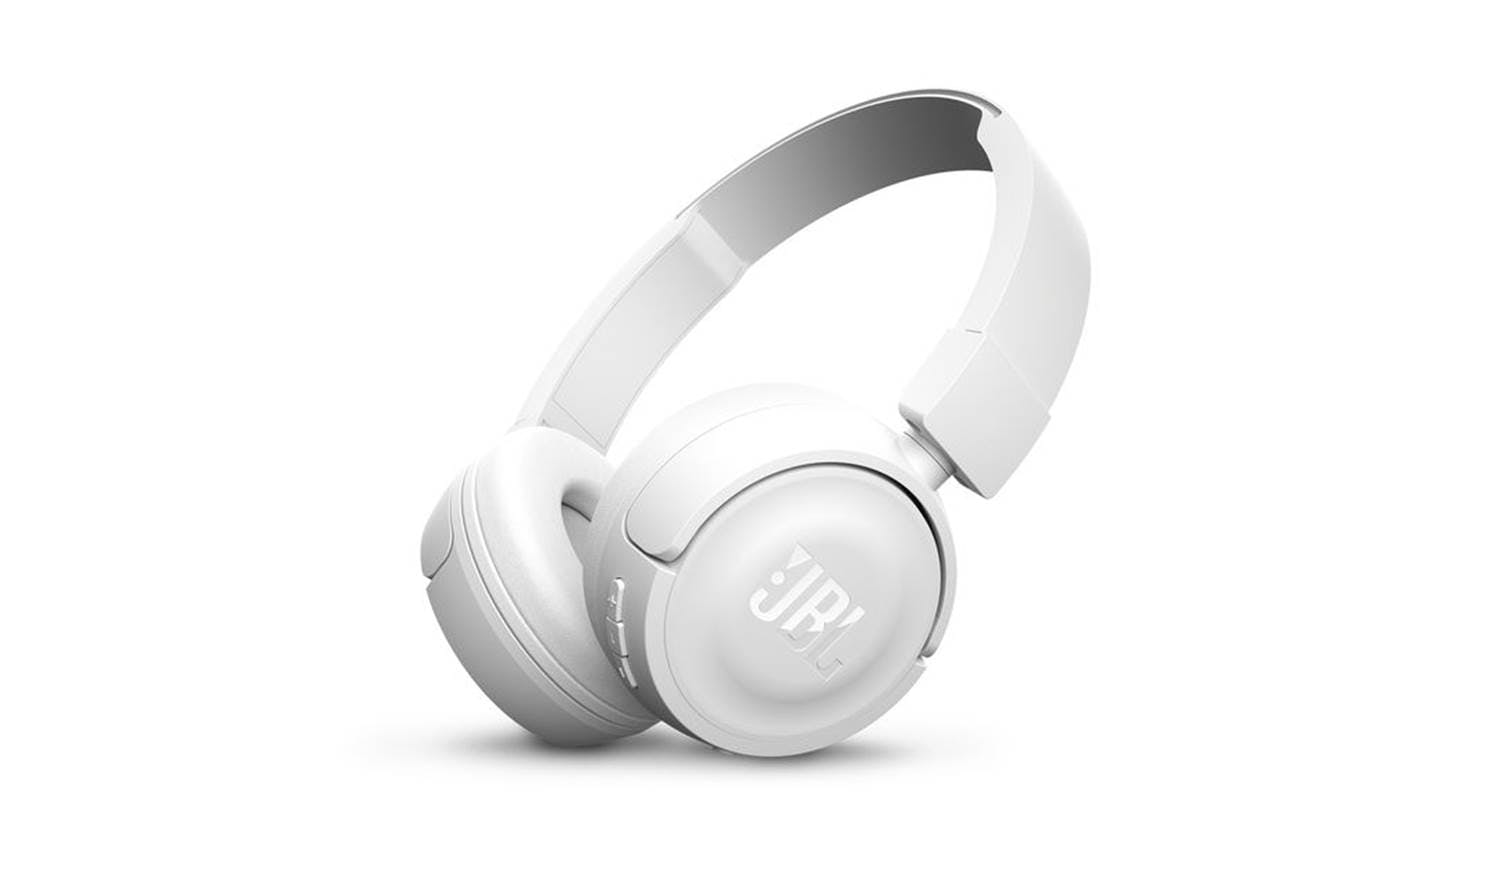 ef89a655890 JBL T450 Bluetooth On-Ear Headphones - White | Harvey Norman Singapore